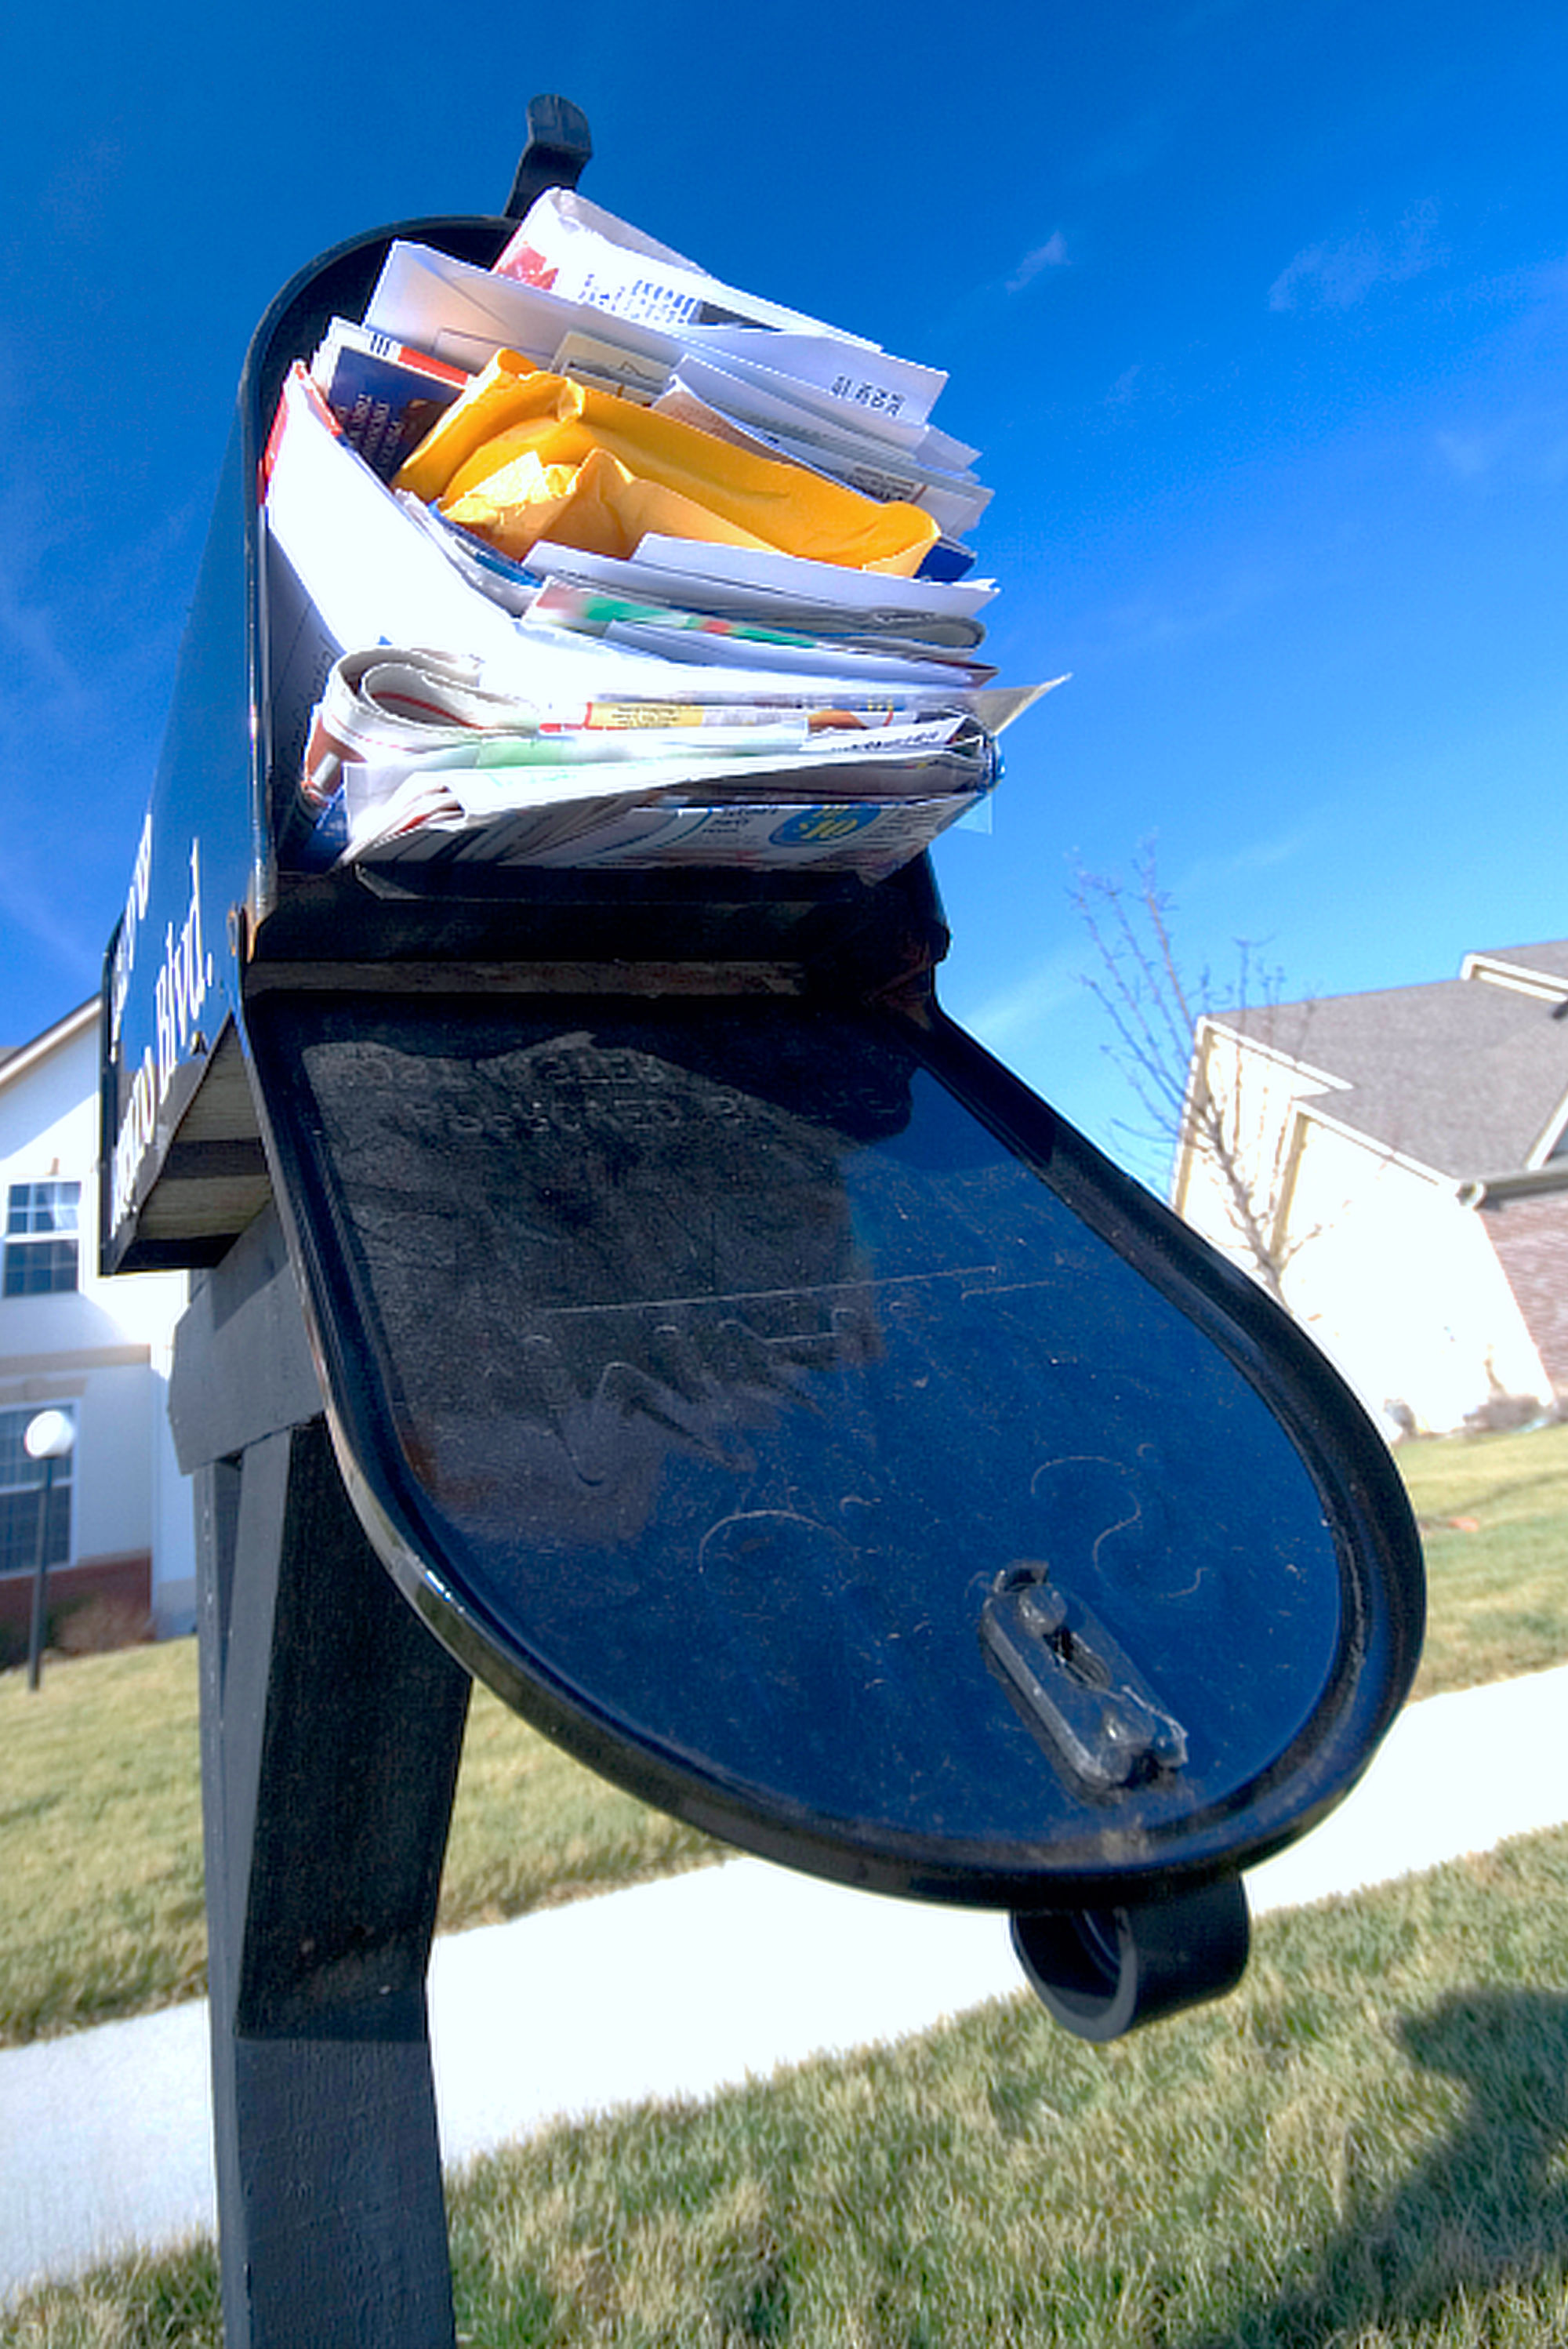 Mailbox filled with junk mail